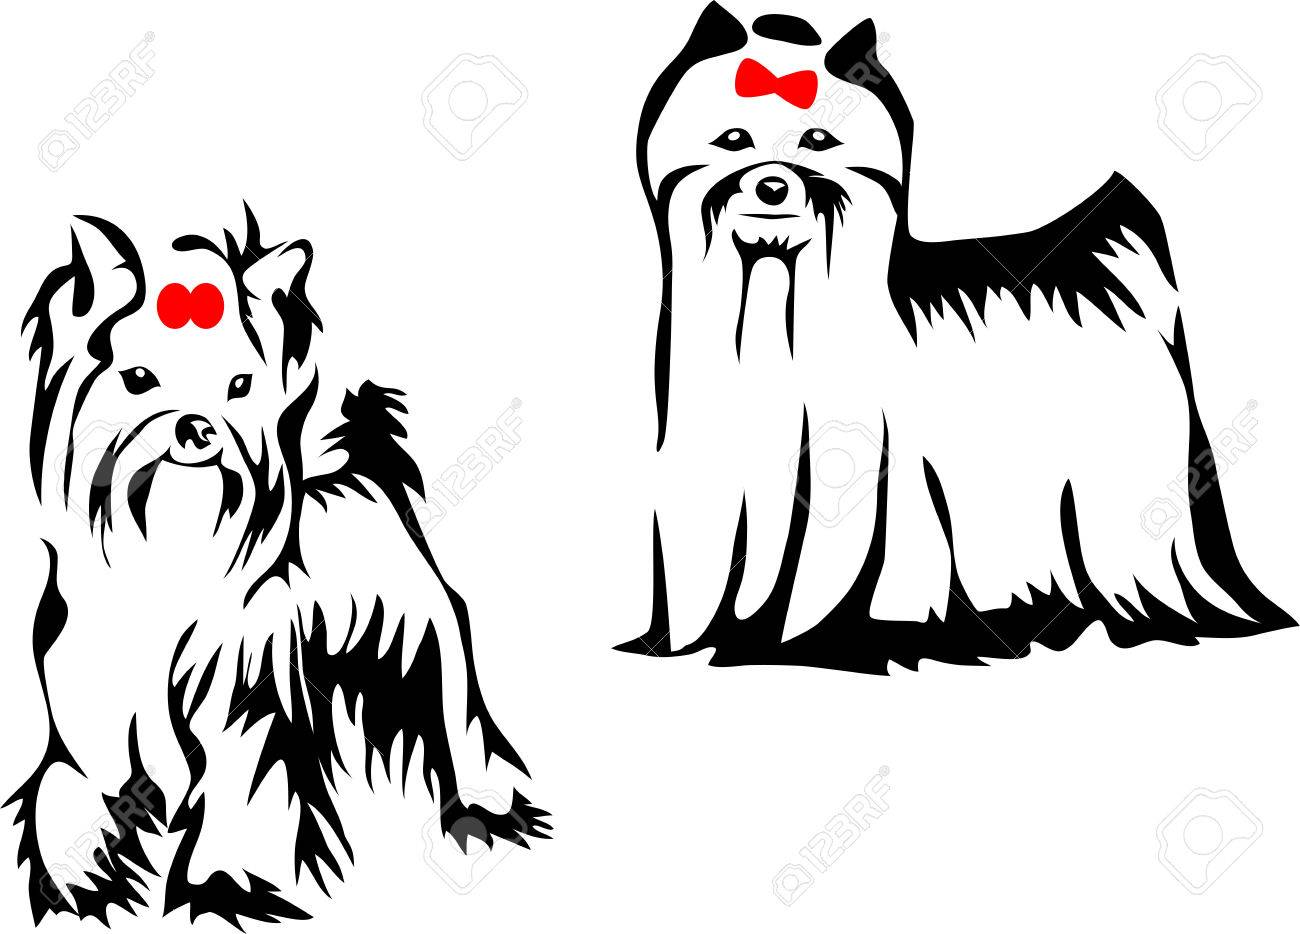 1300x934 Yorkshire Terrier Stock Photos. Royalty Free Business Images